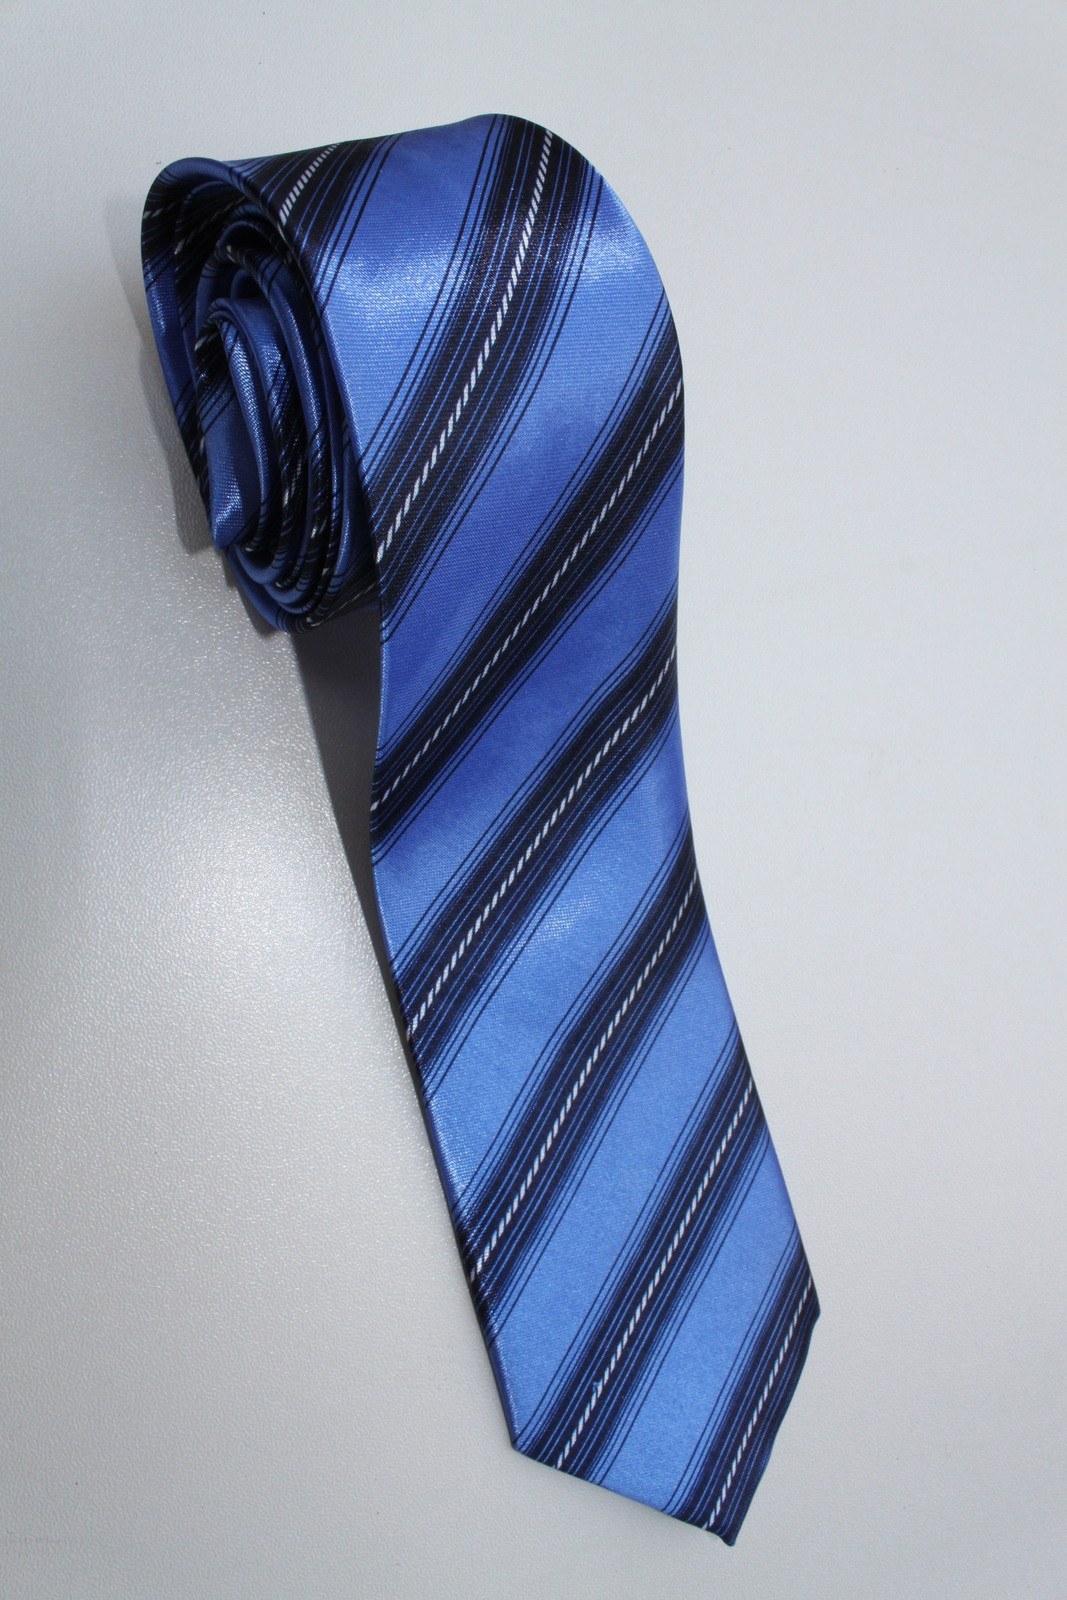 Primary image for SLIM Blue Black White Striped Men Formal Fashion Neck Tie